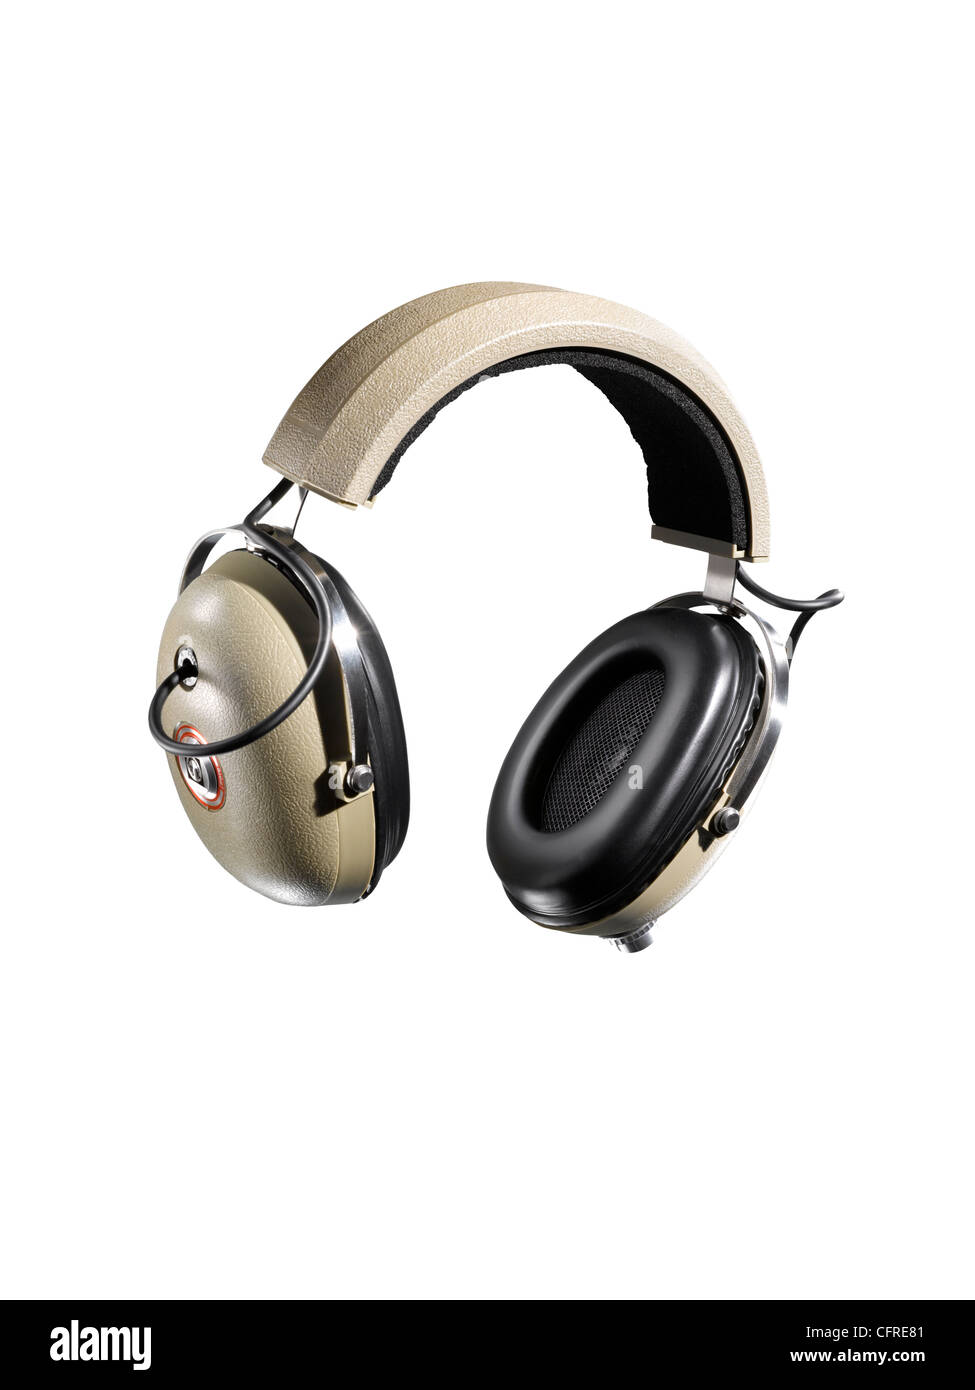 Headphones shot as a cut out Stock Photo